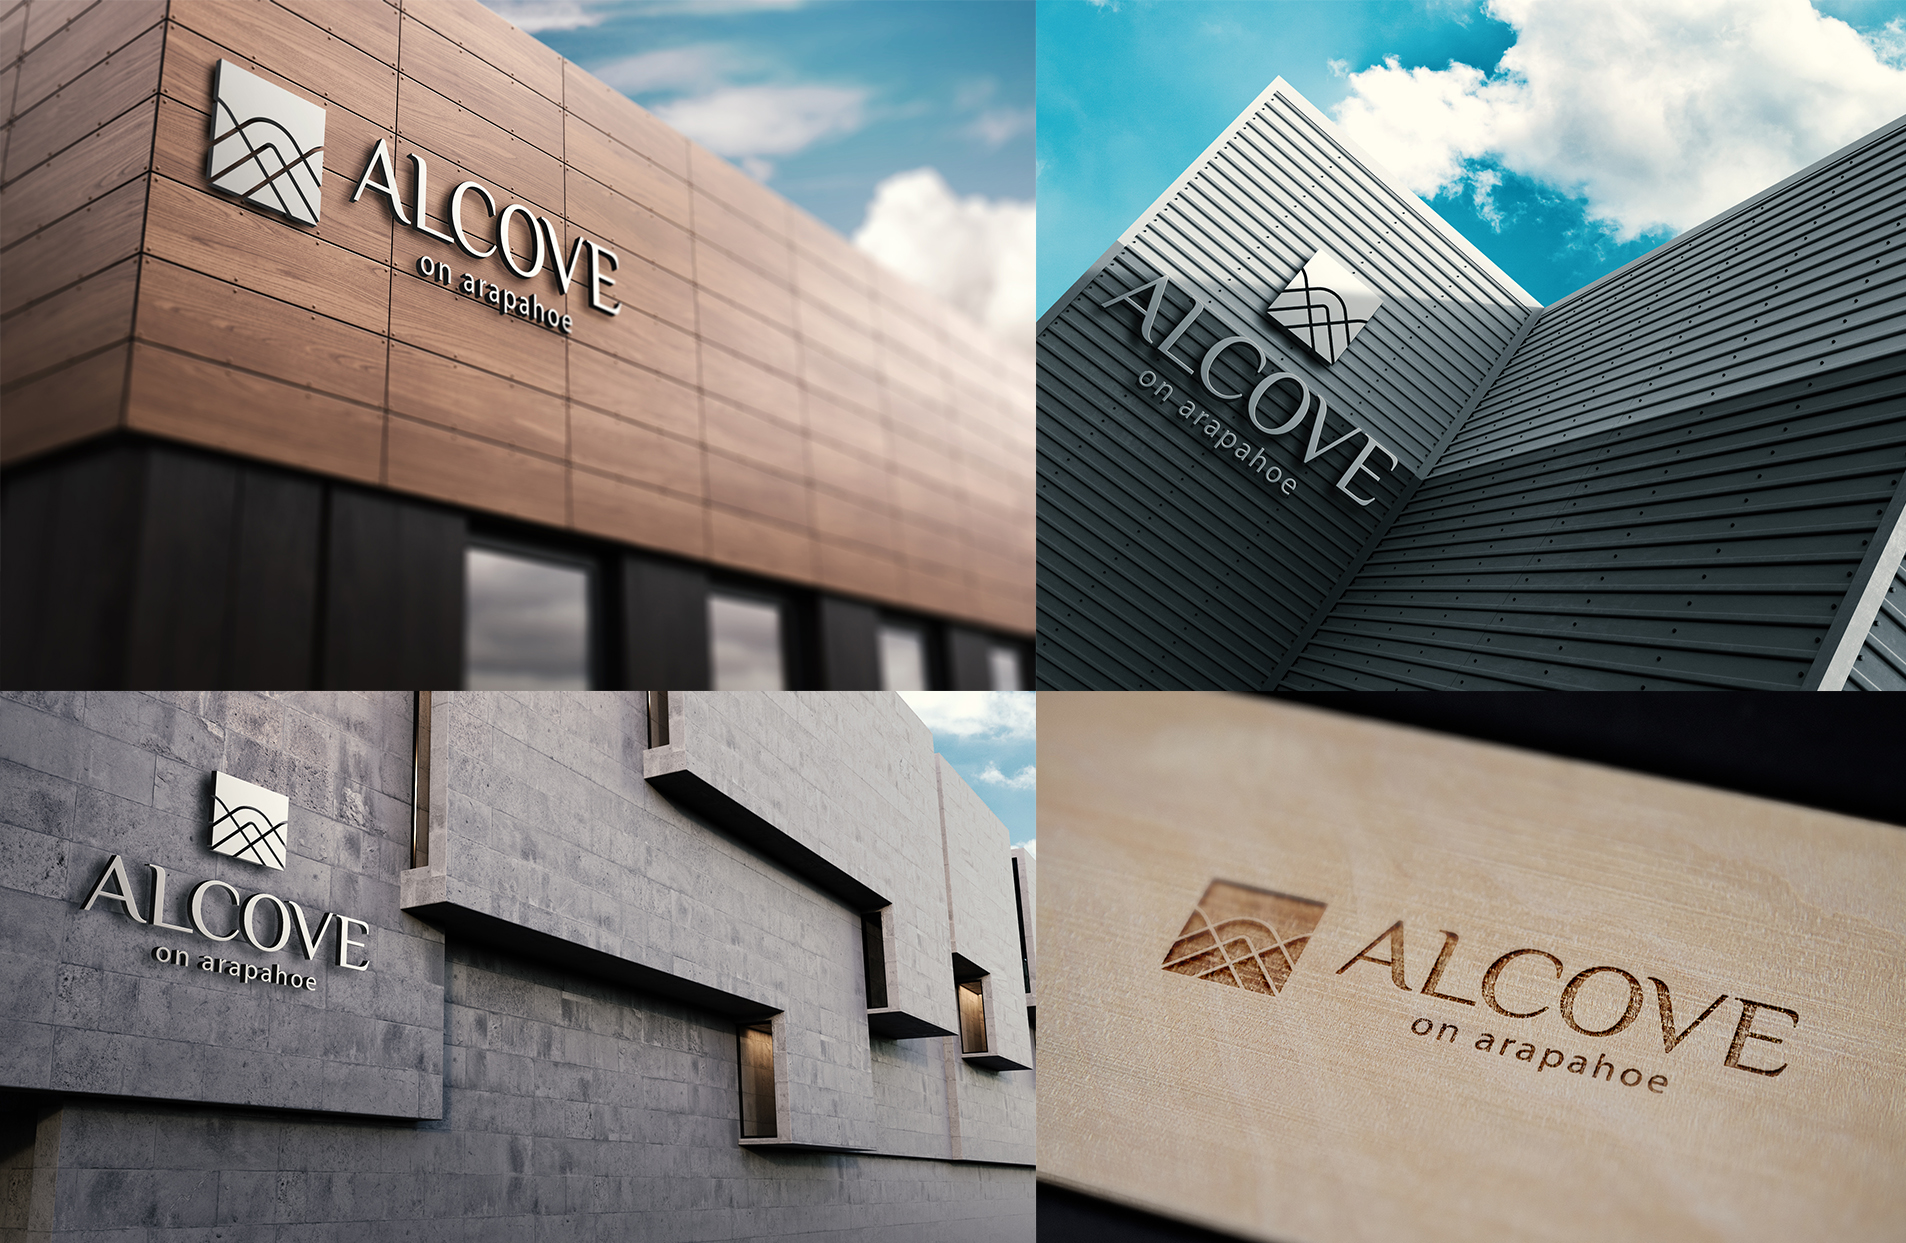 examples of alcove on arapahoe branding project